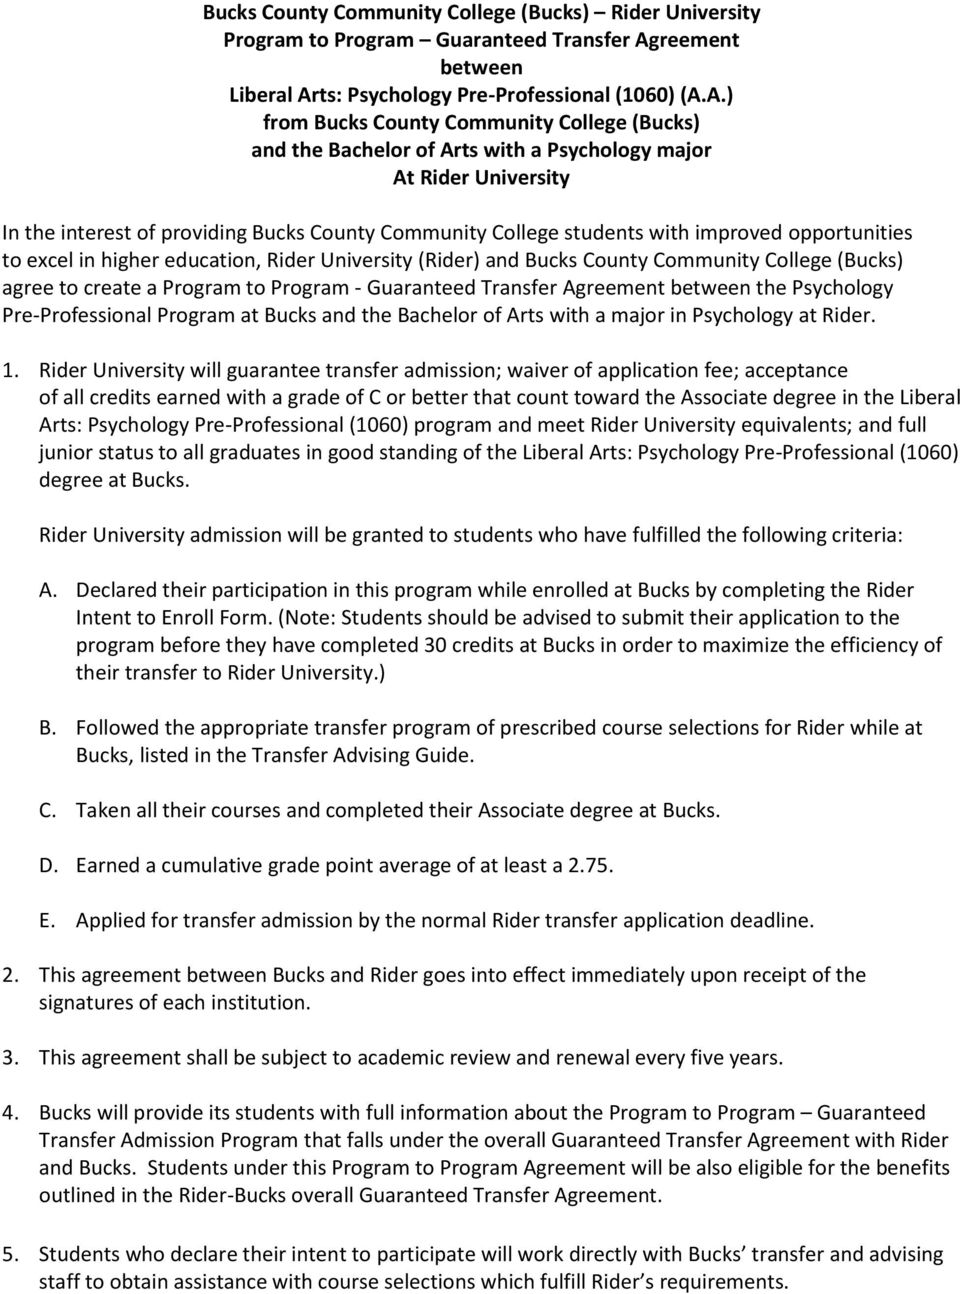 ts: Psychology Pre-Professional (1060) (A.